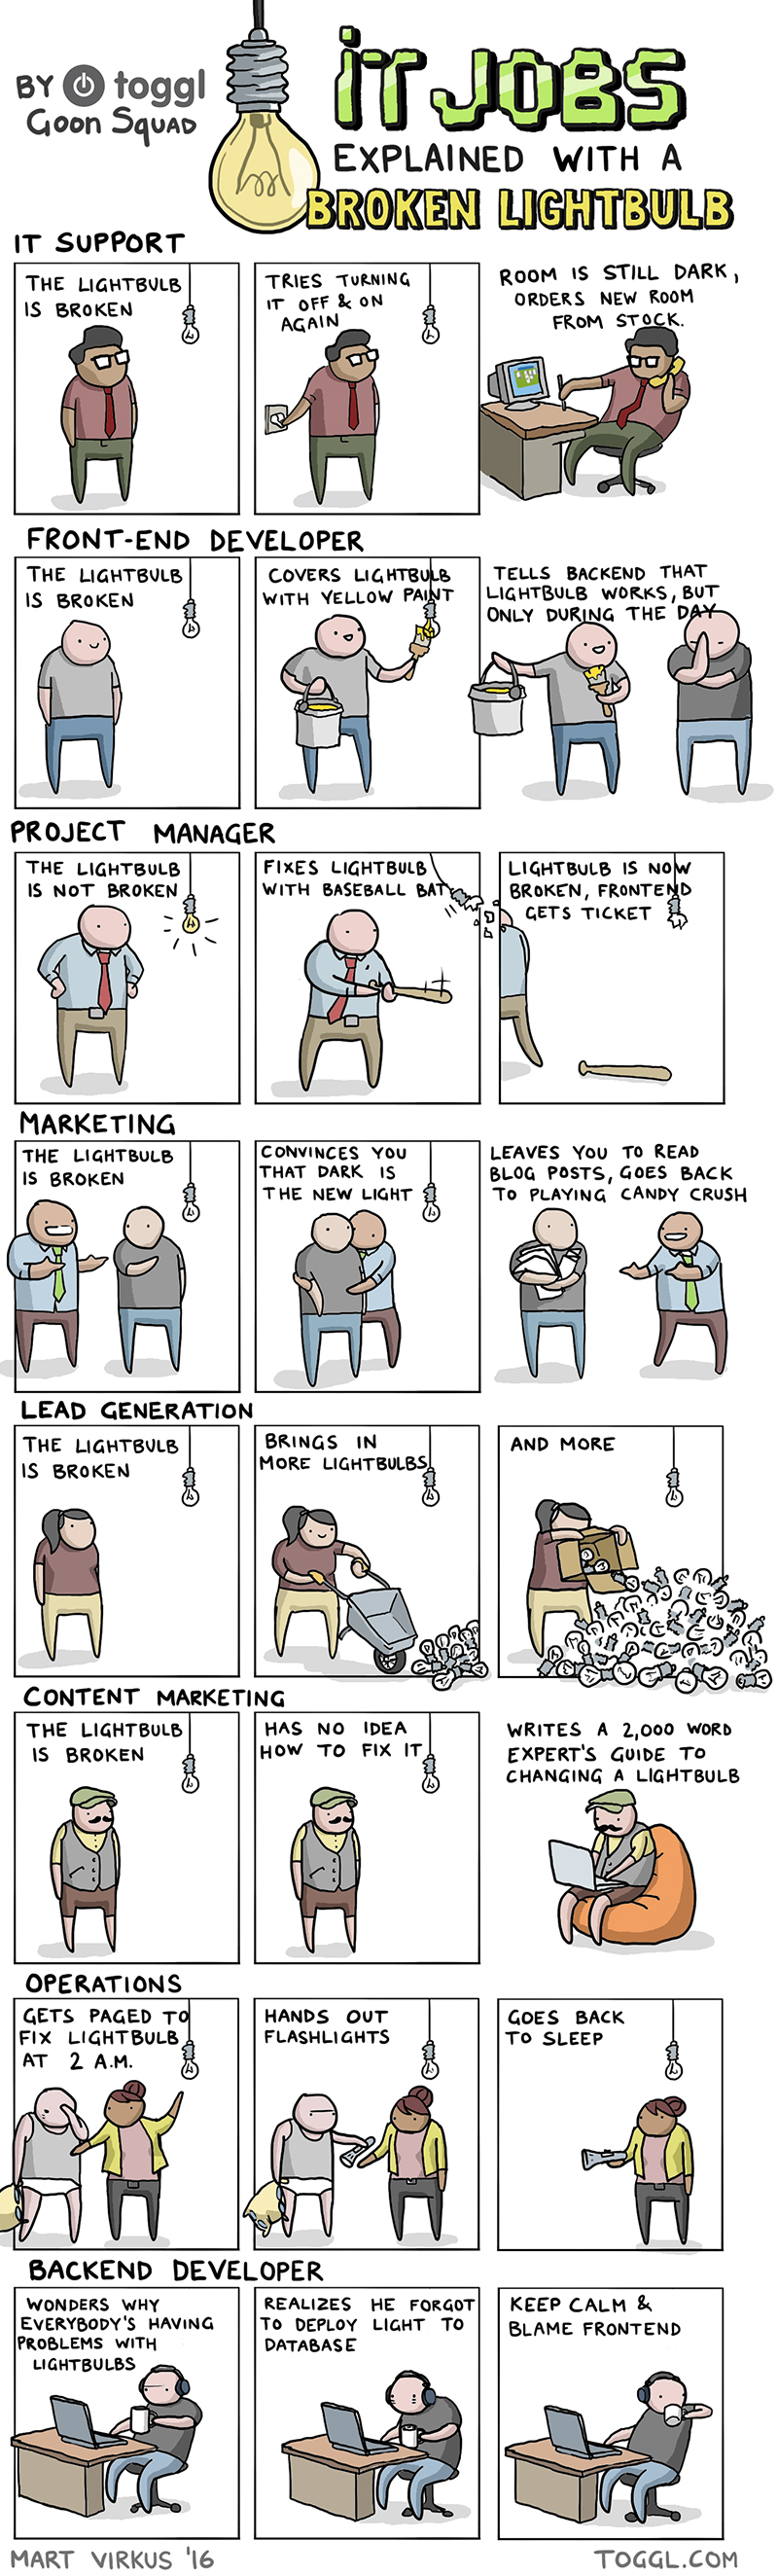 IT Jobs Explained With A Broken Lightbulb - comic by Toggl